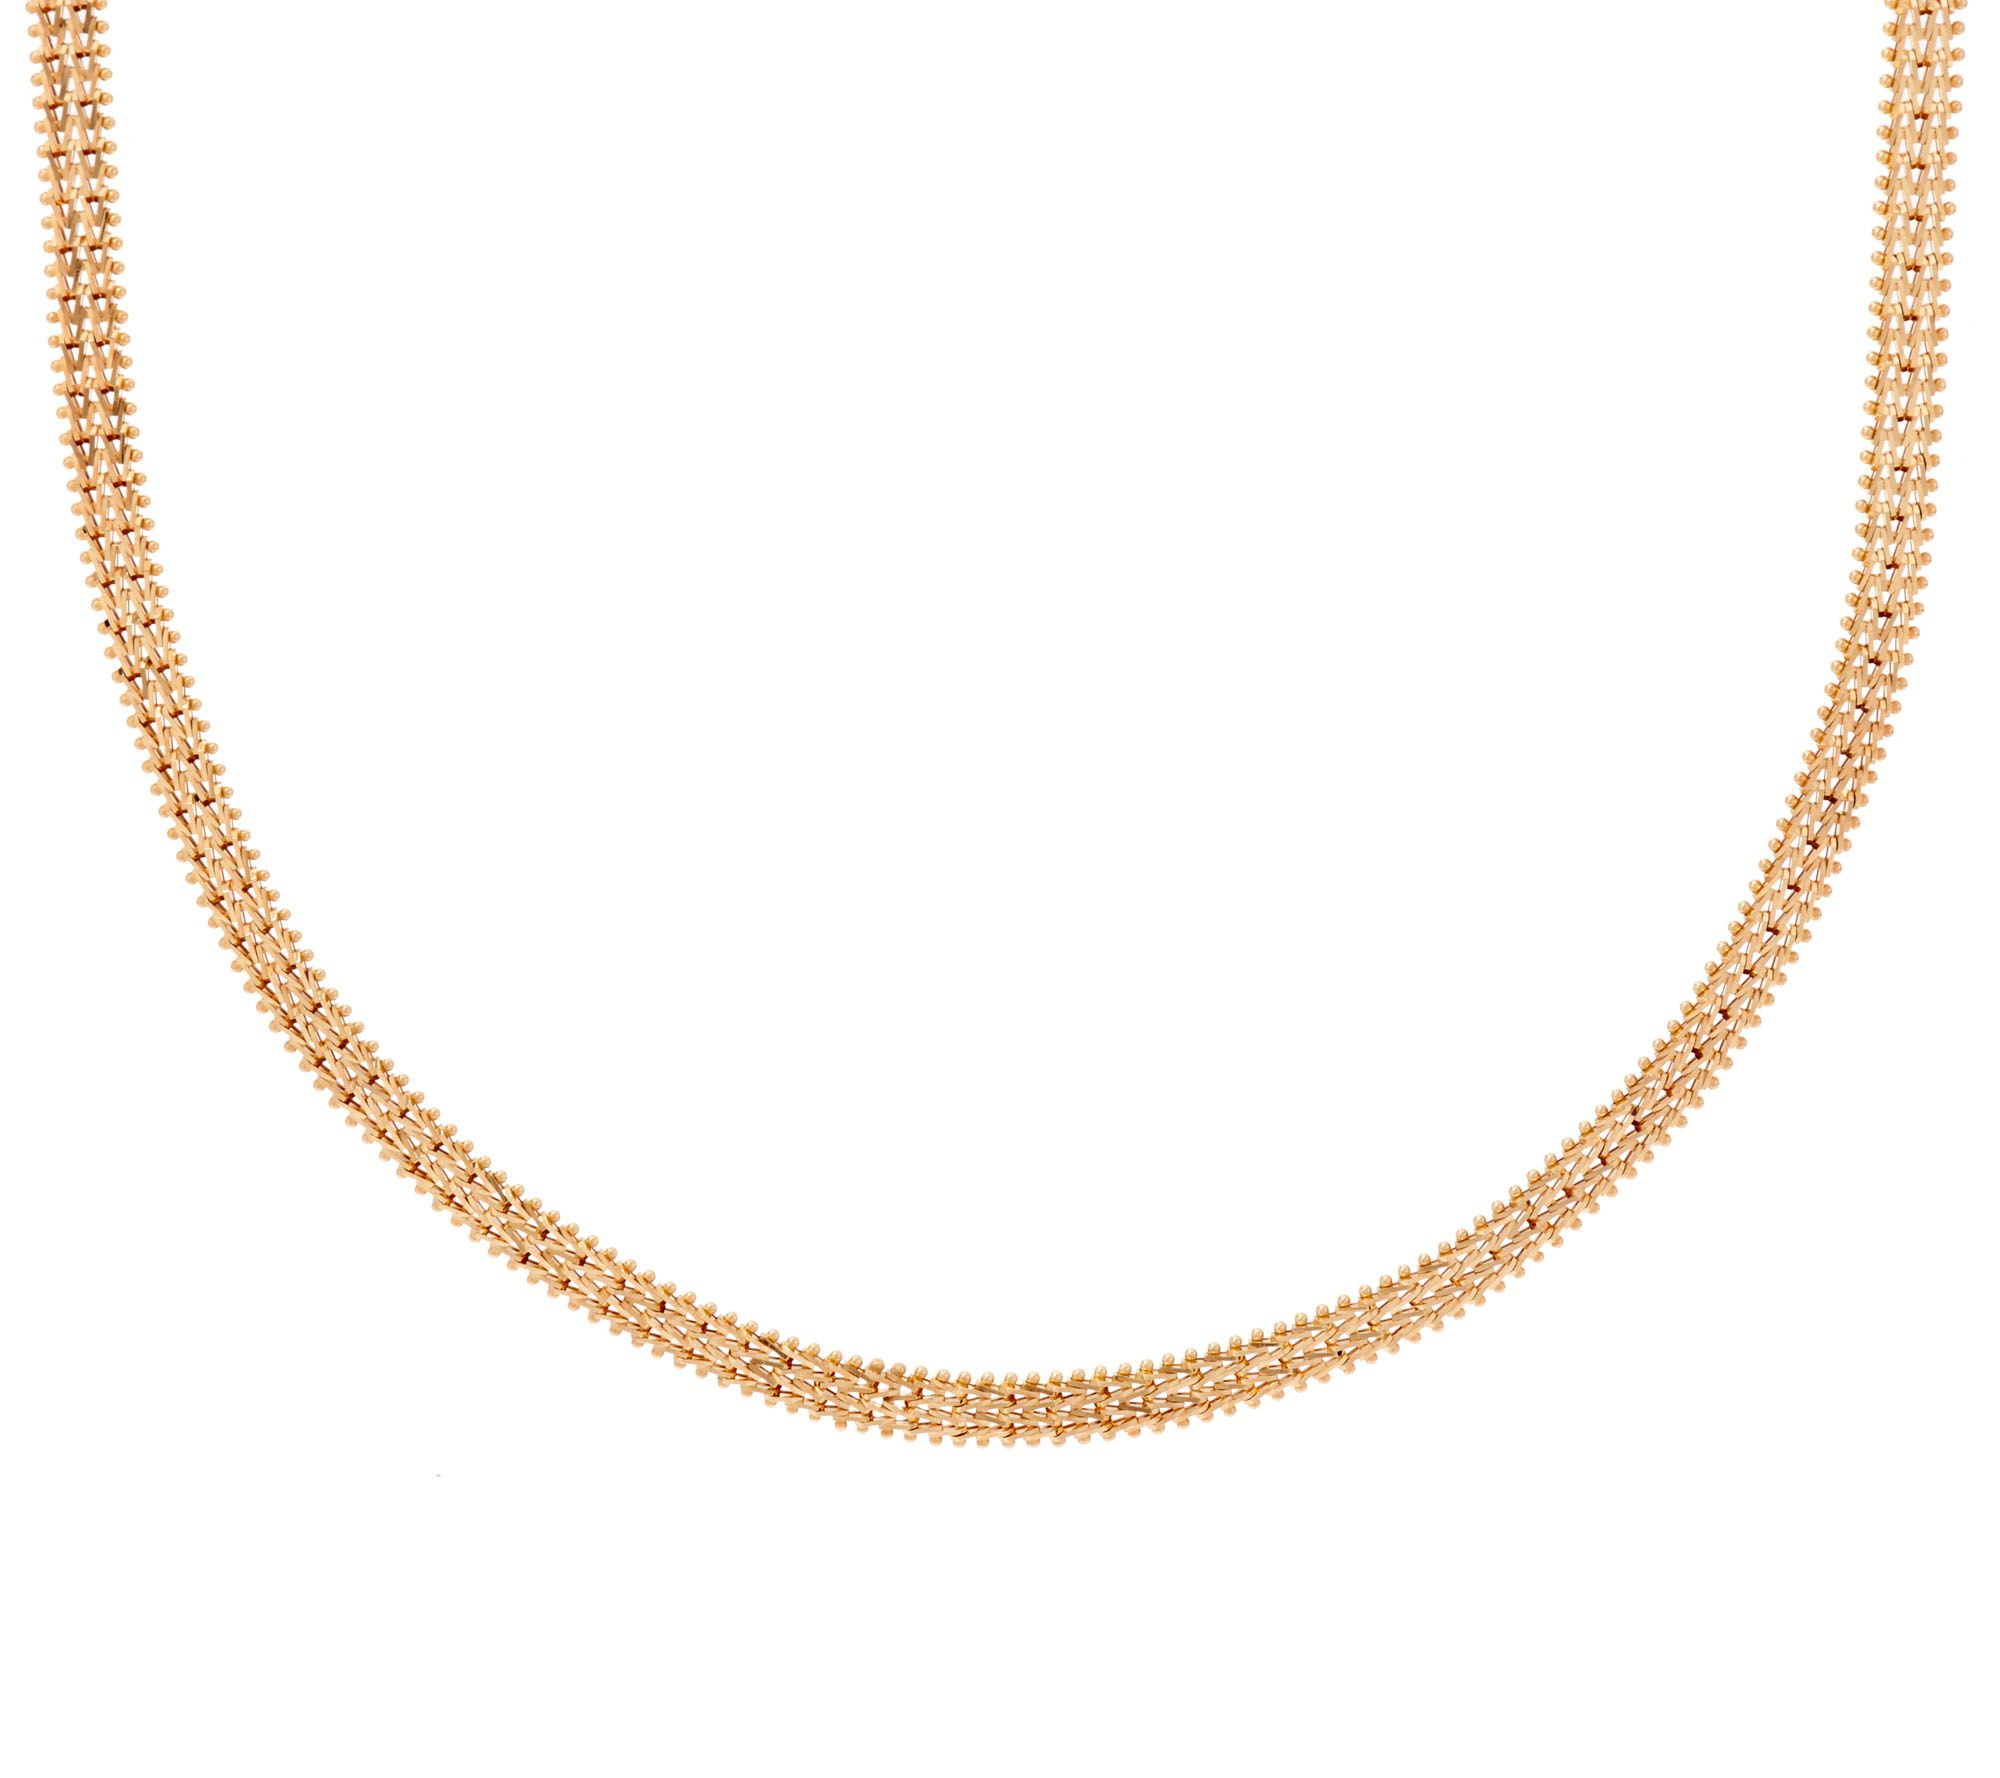 Imperial Gold 18 Yellow Woven Wheat Necklace 14K 255g Page 1